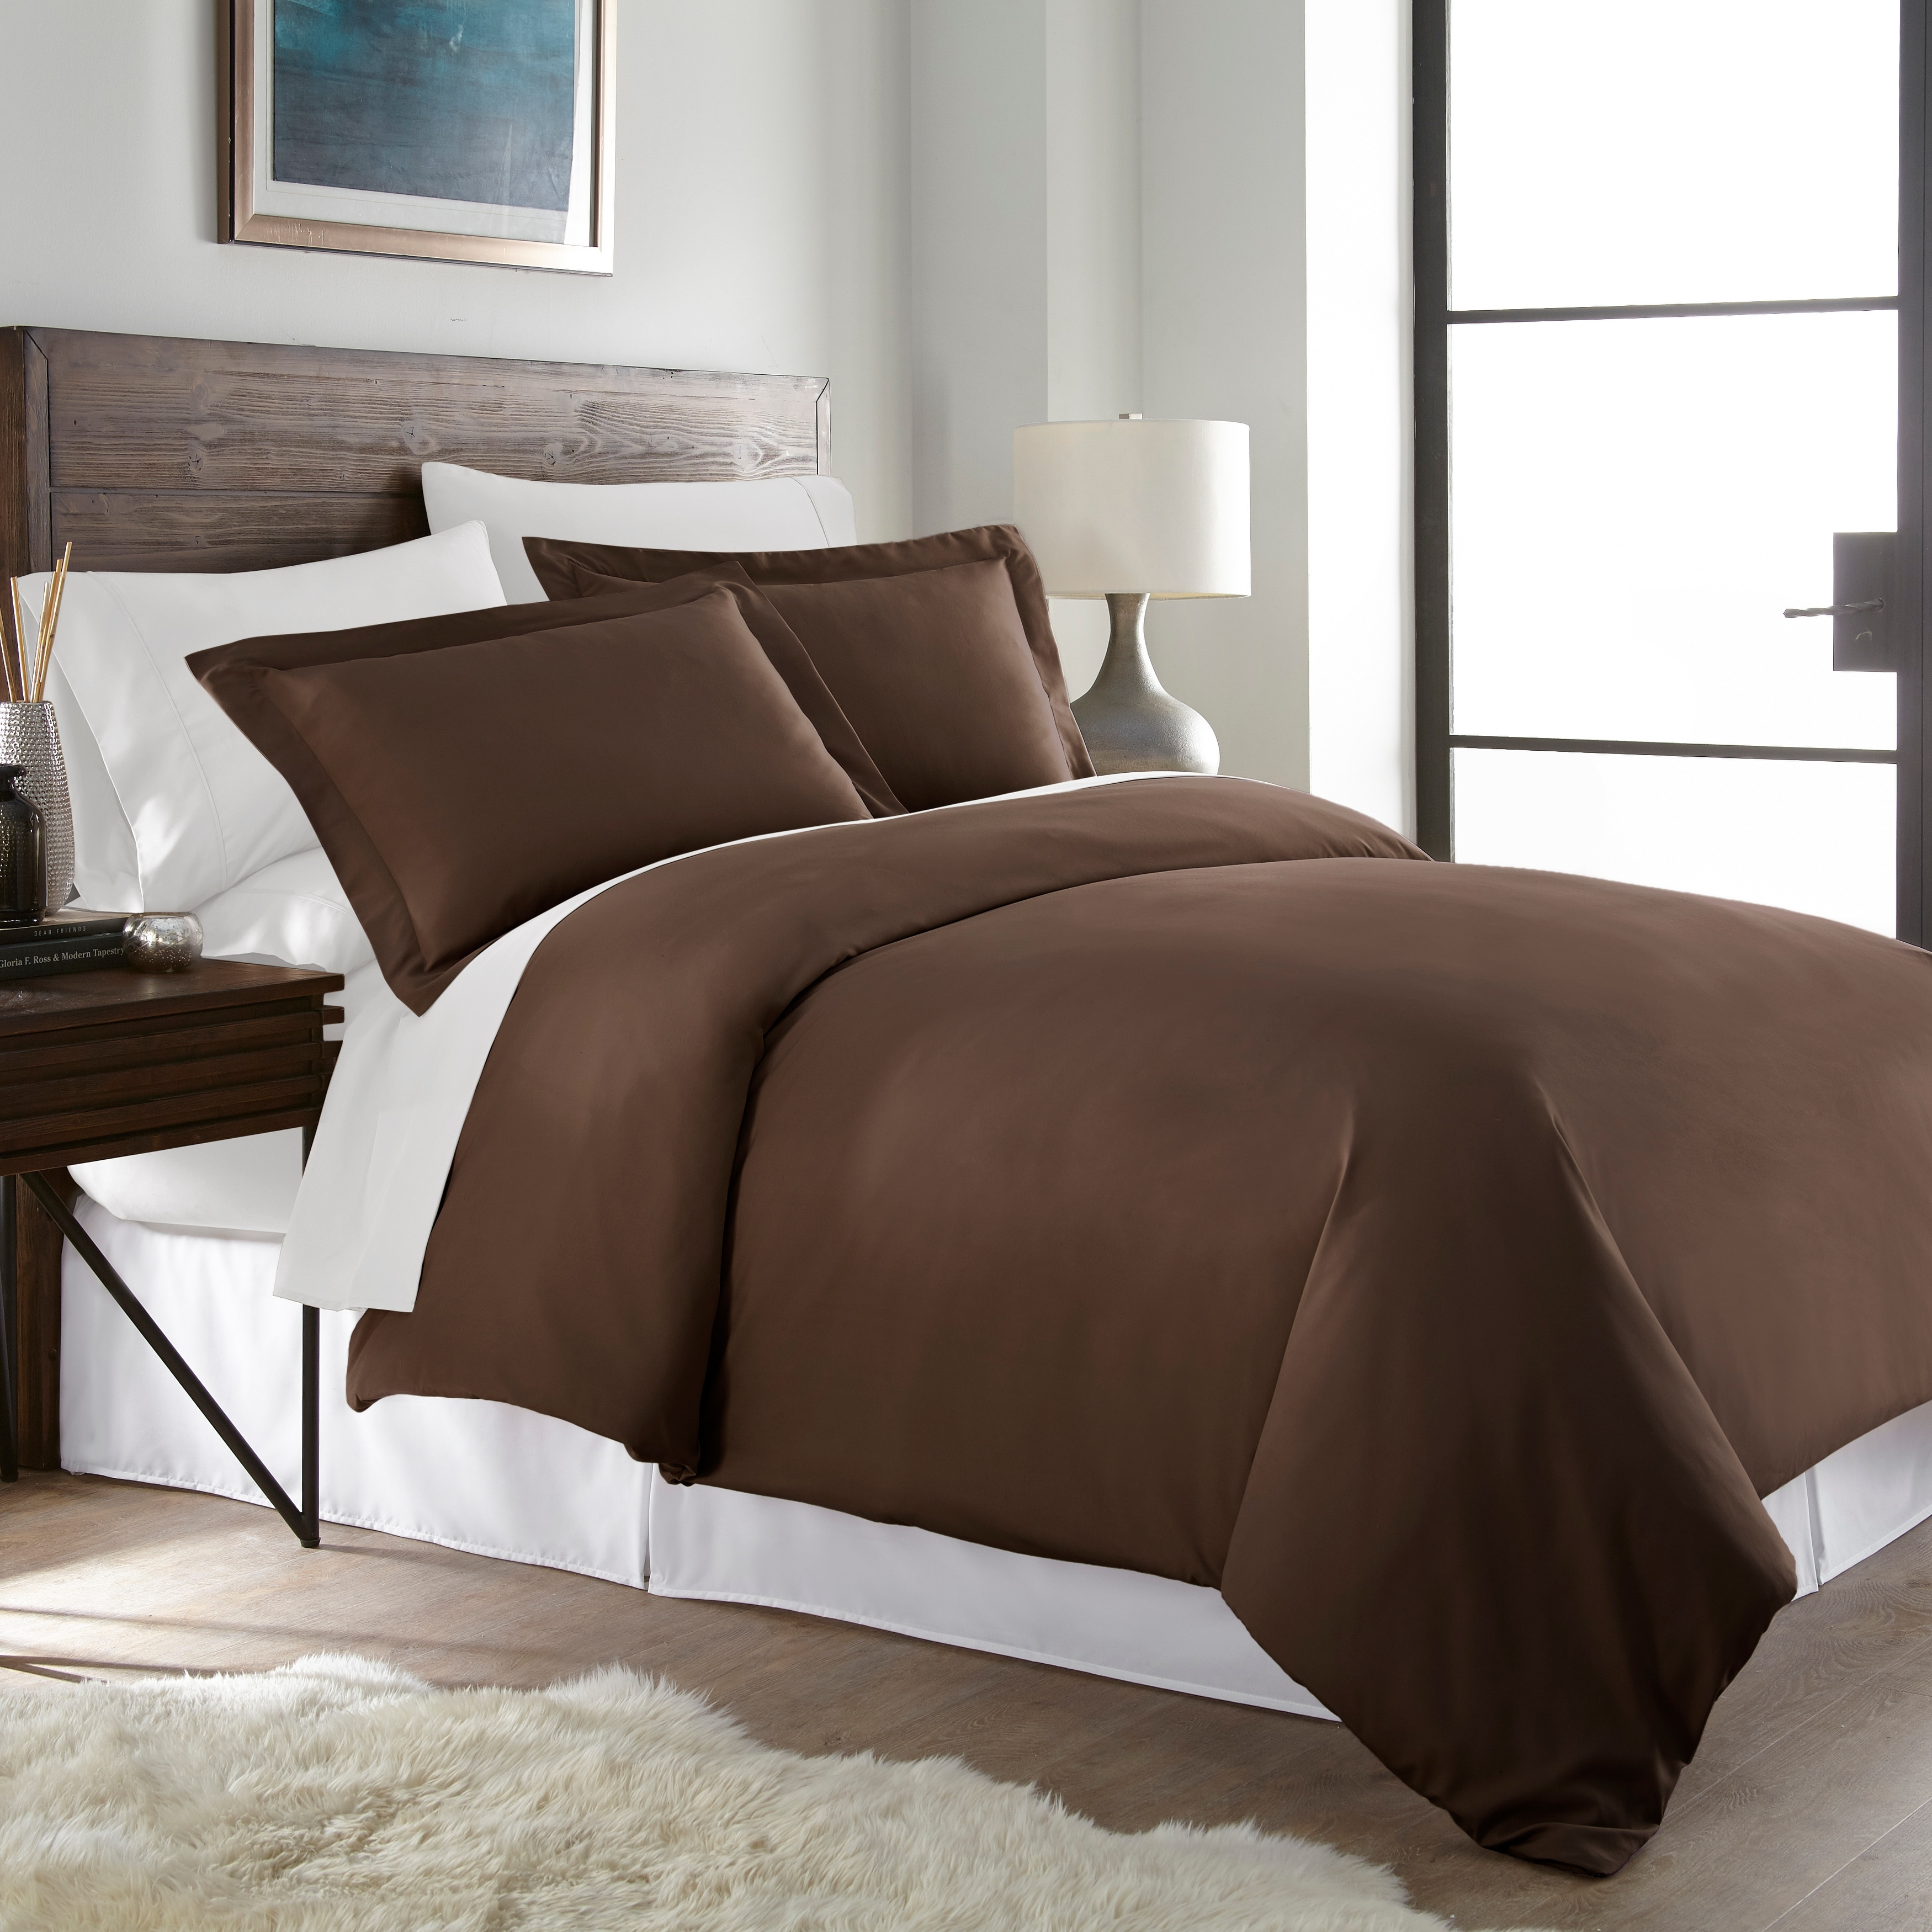 Hotel Luxury Ultra Soft 3pc Duvet Cover Set, 1500 Series Premium Collection  (2 Options